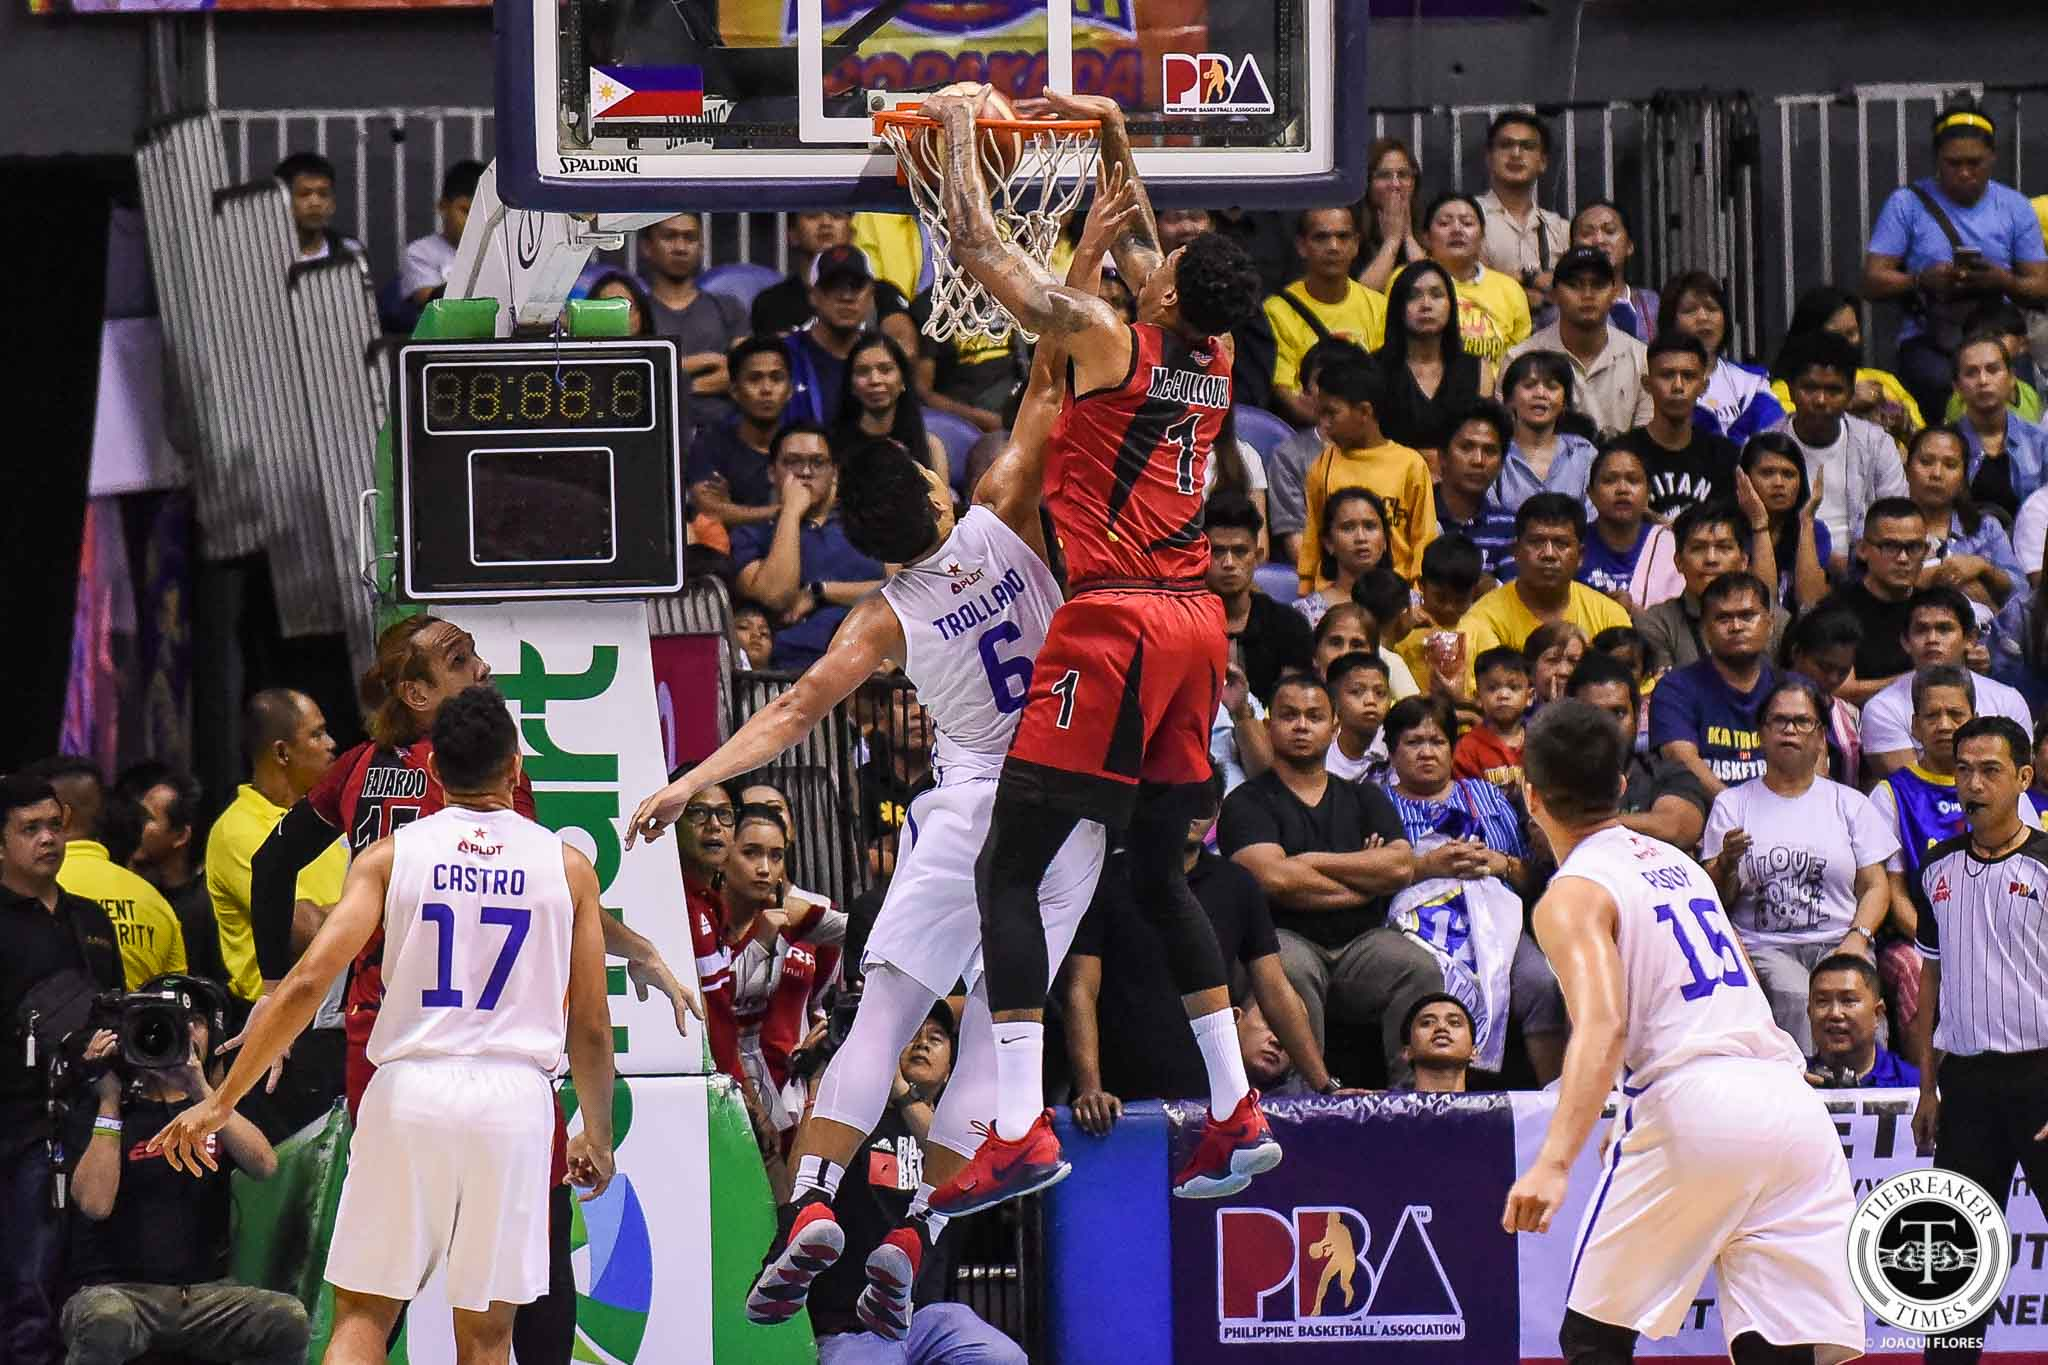 Tiebreaker Times After first championship, Chris McCullough vows to return if he's not in NBA Basketball News PBA  San Miguel Beermen PBA Season 44 Chris McCullough 2019 PBA Commissioners Cup